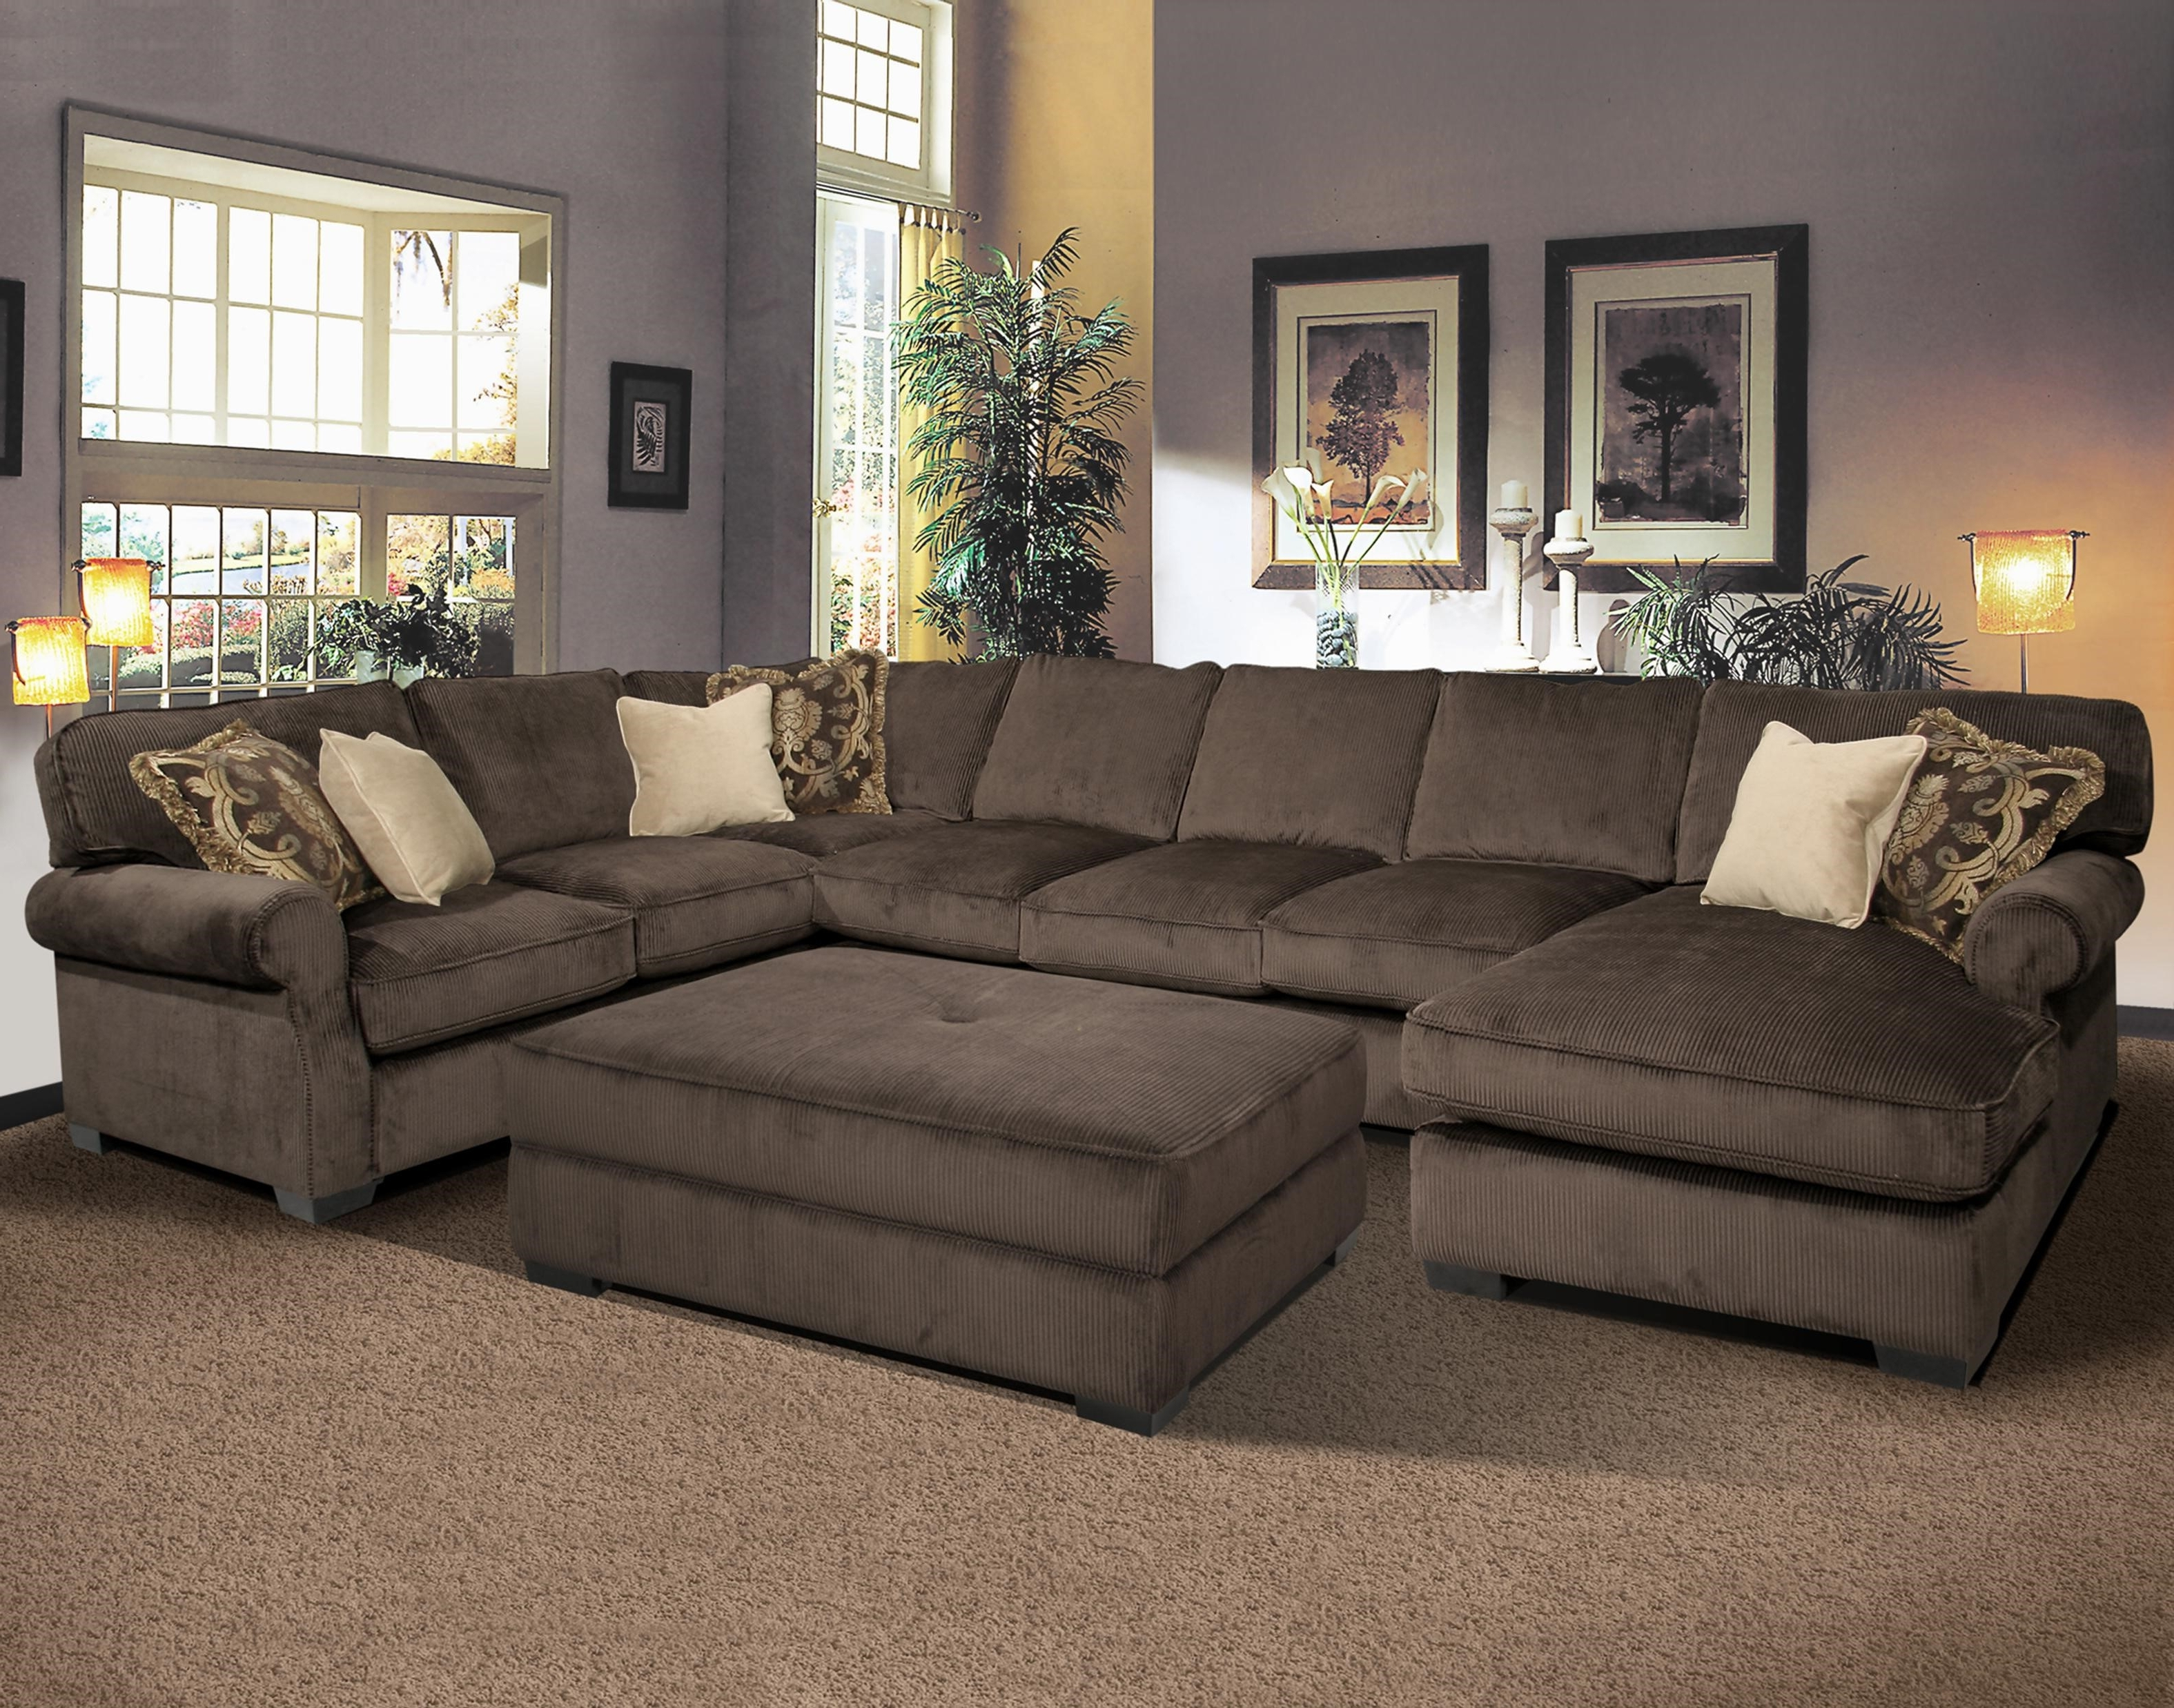 Best Collection Of Jcpenney Sectional Sofas